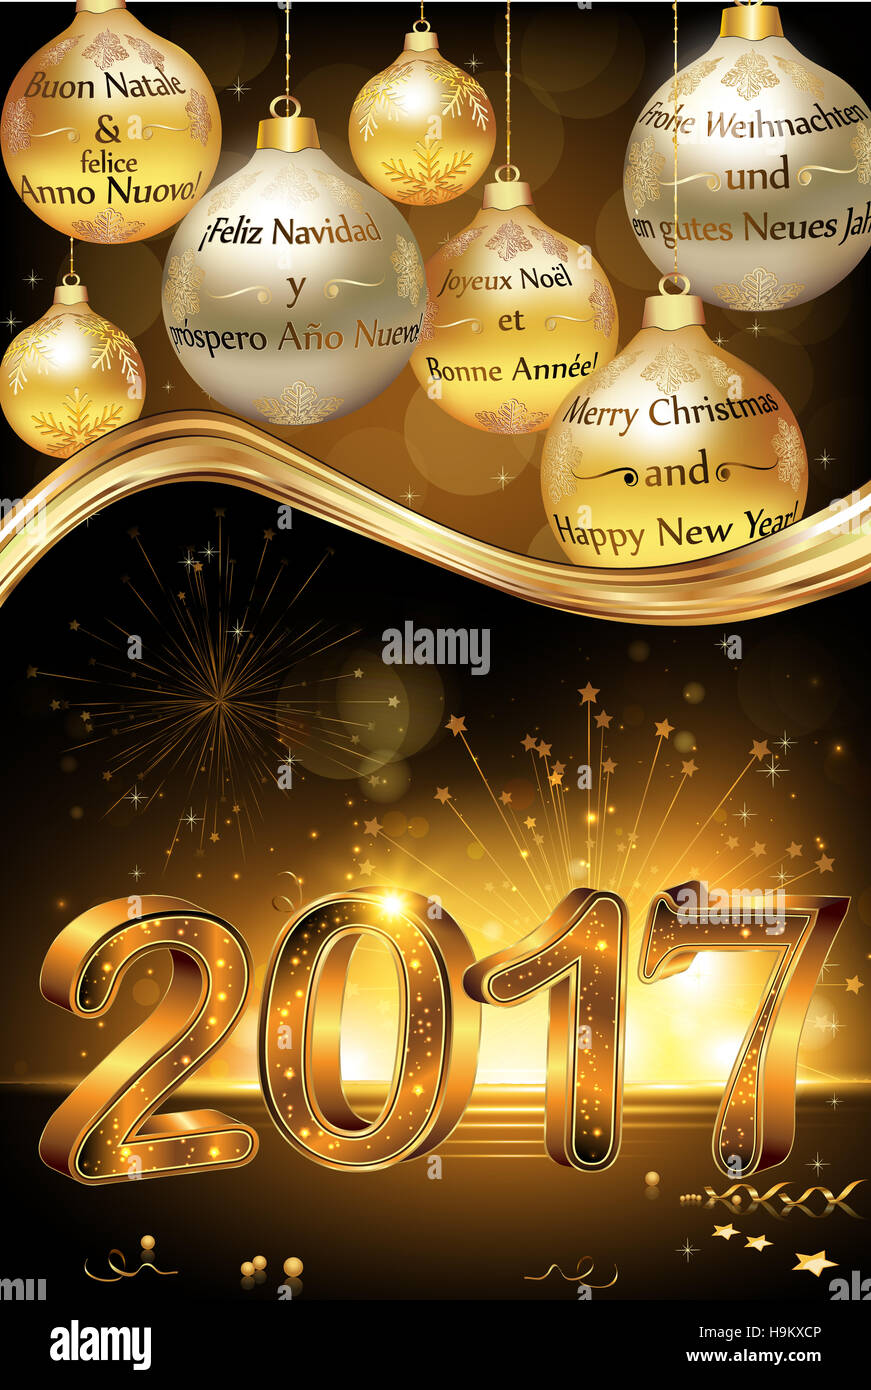 German new year greetings stock photos german new year greetings happy new year 2017 greeting card card with message in many languages english kristyandbryce Images